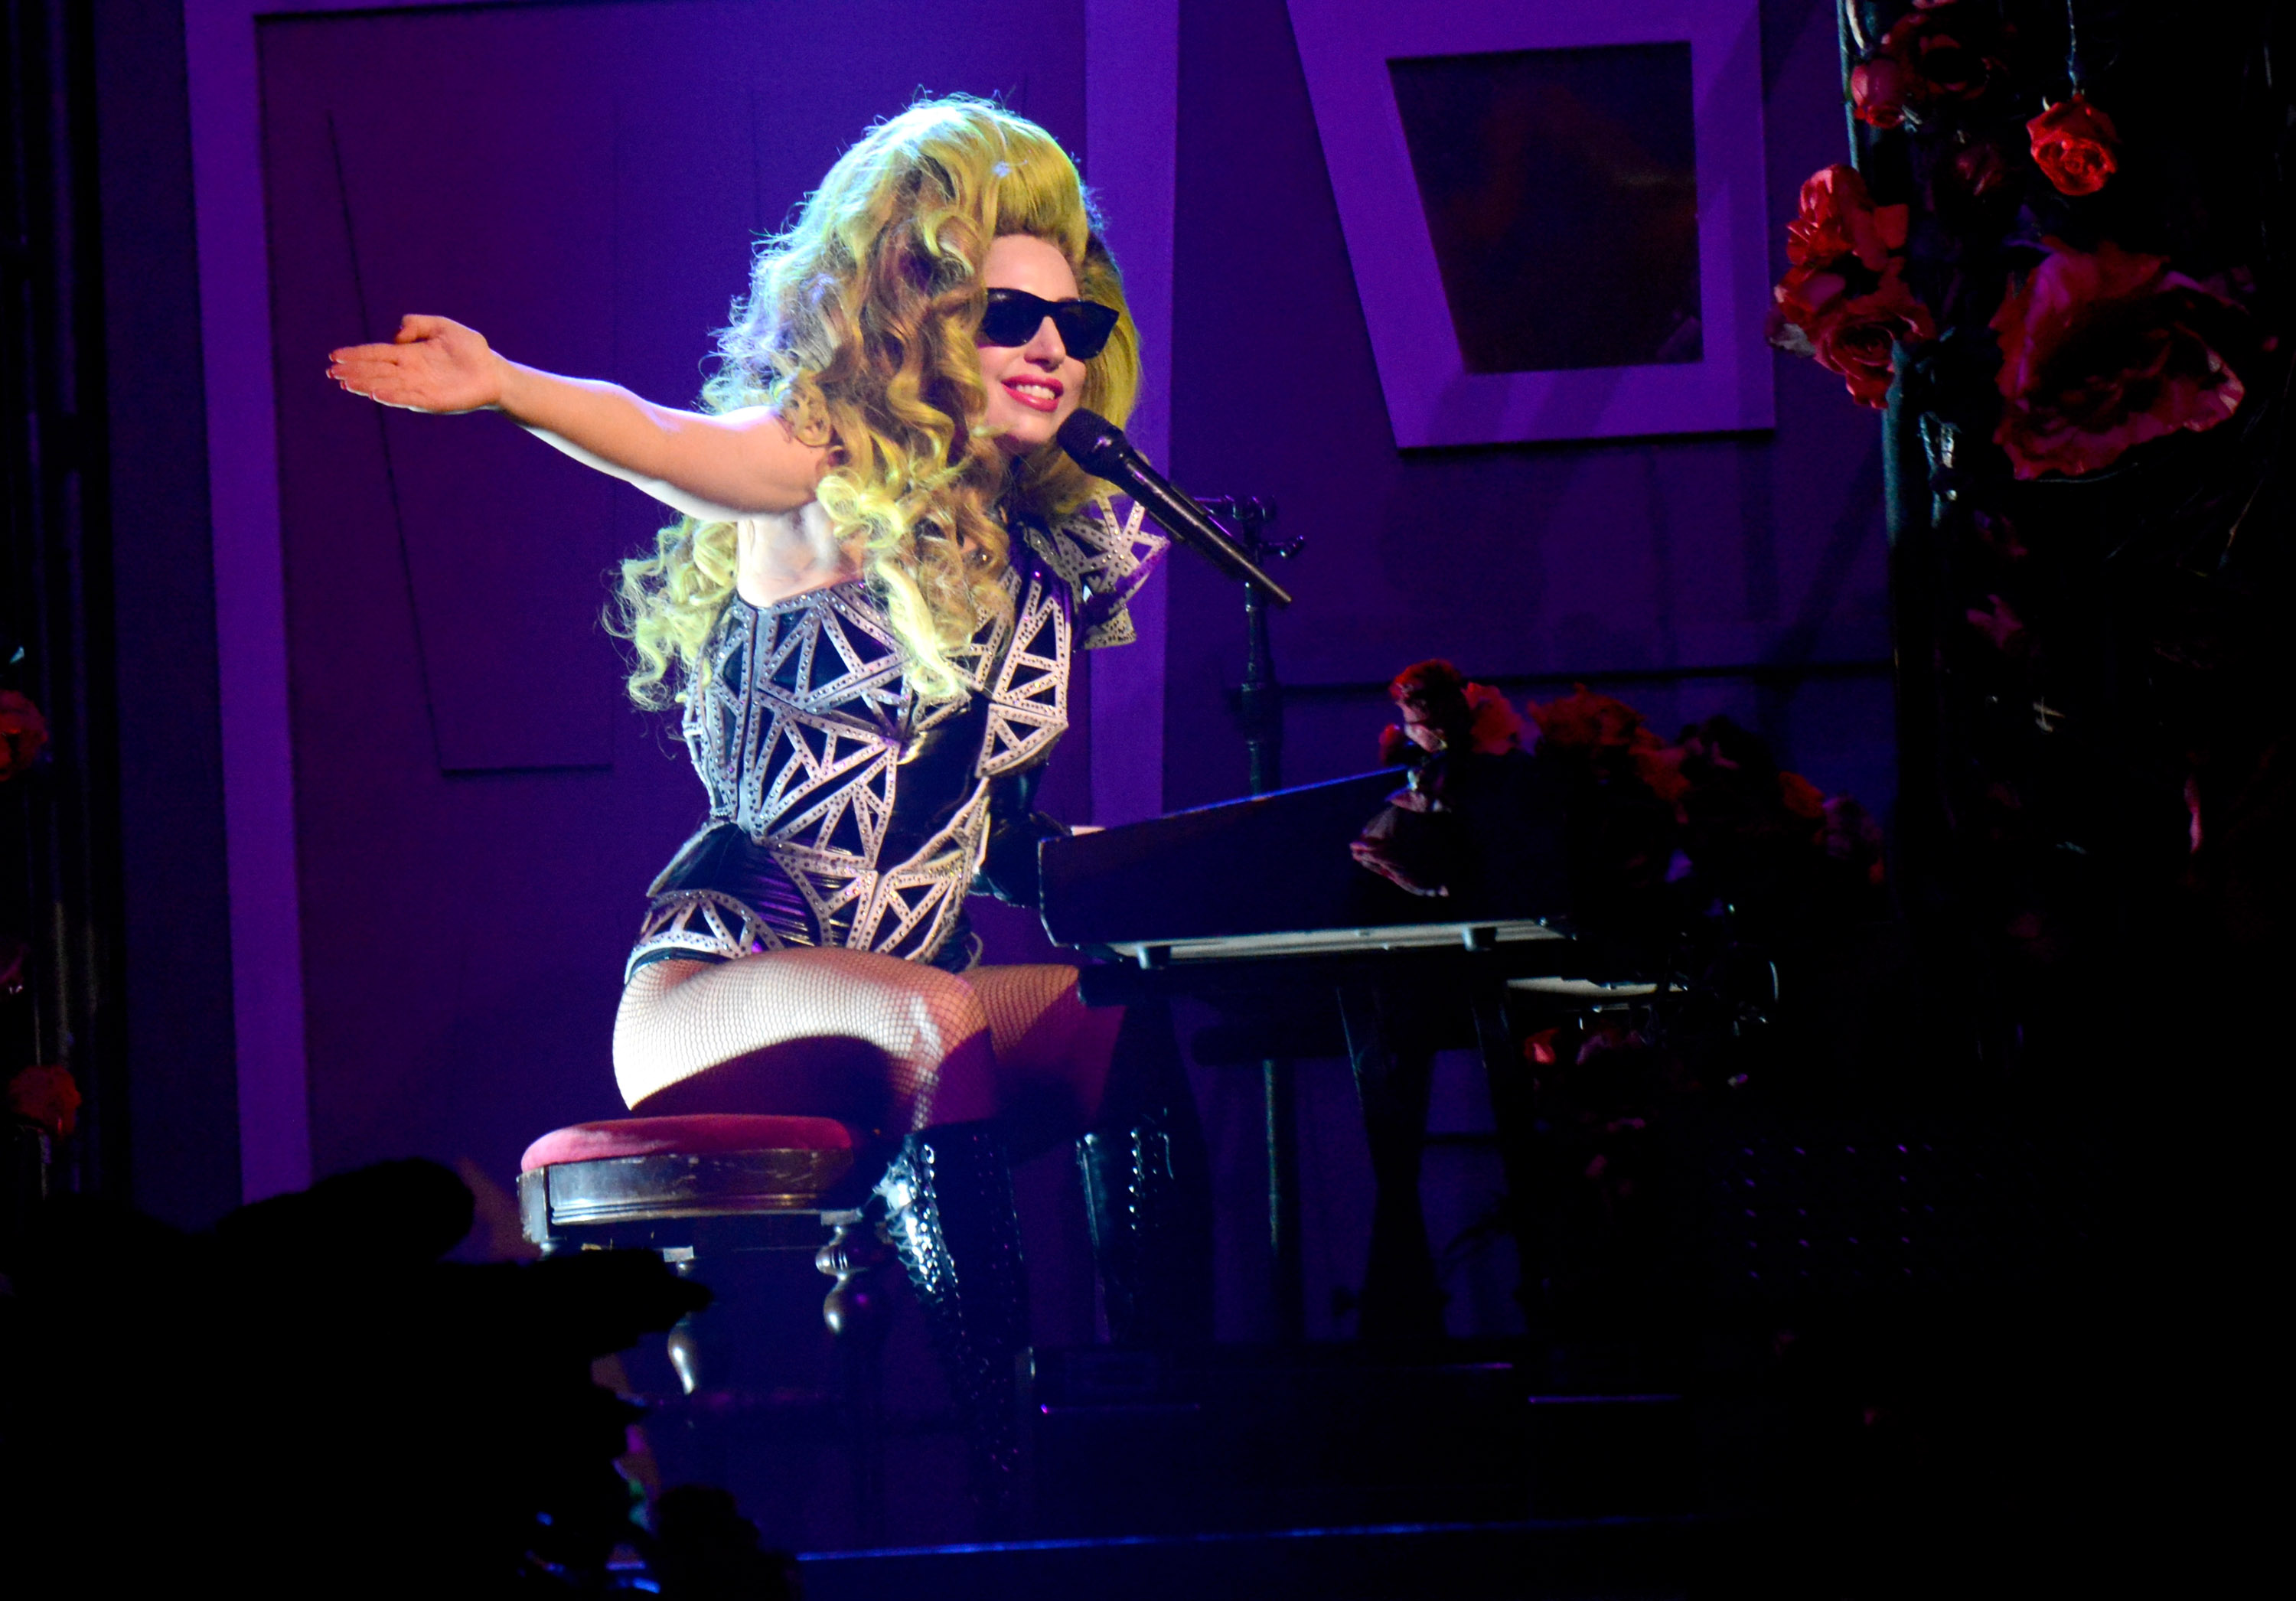 NEW YORK, NY - APRIL 07:  (EXCLUSIVE COVERAGE) Lady Gaga performs onstage at Roseland Ballroom on April 7, 2014 in New York C